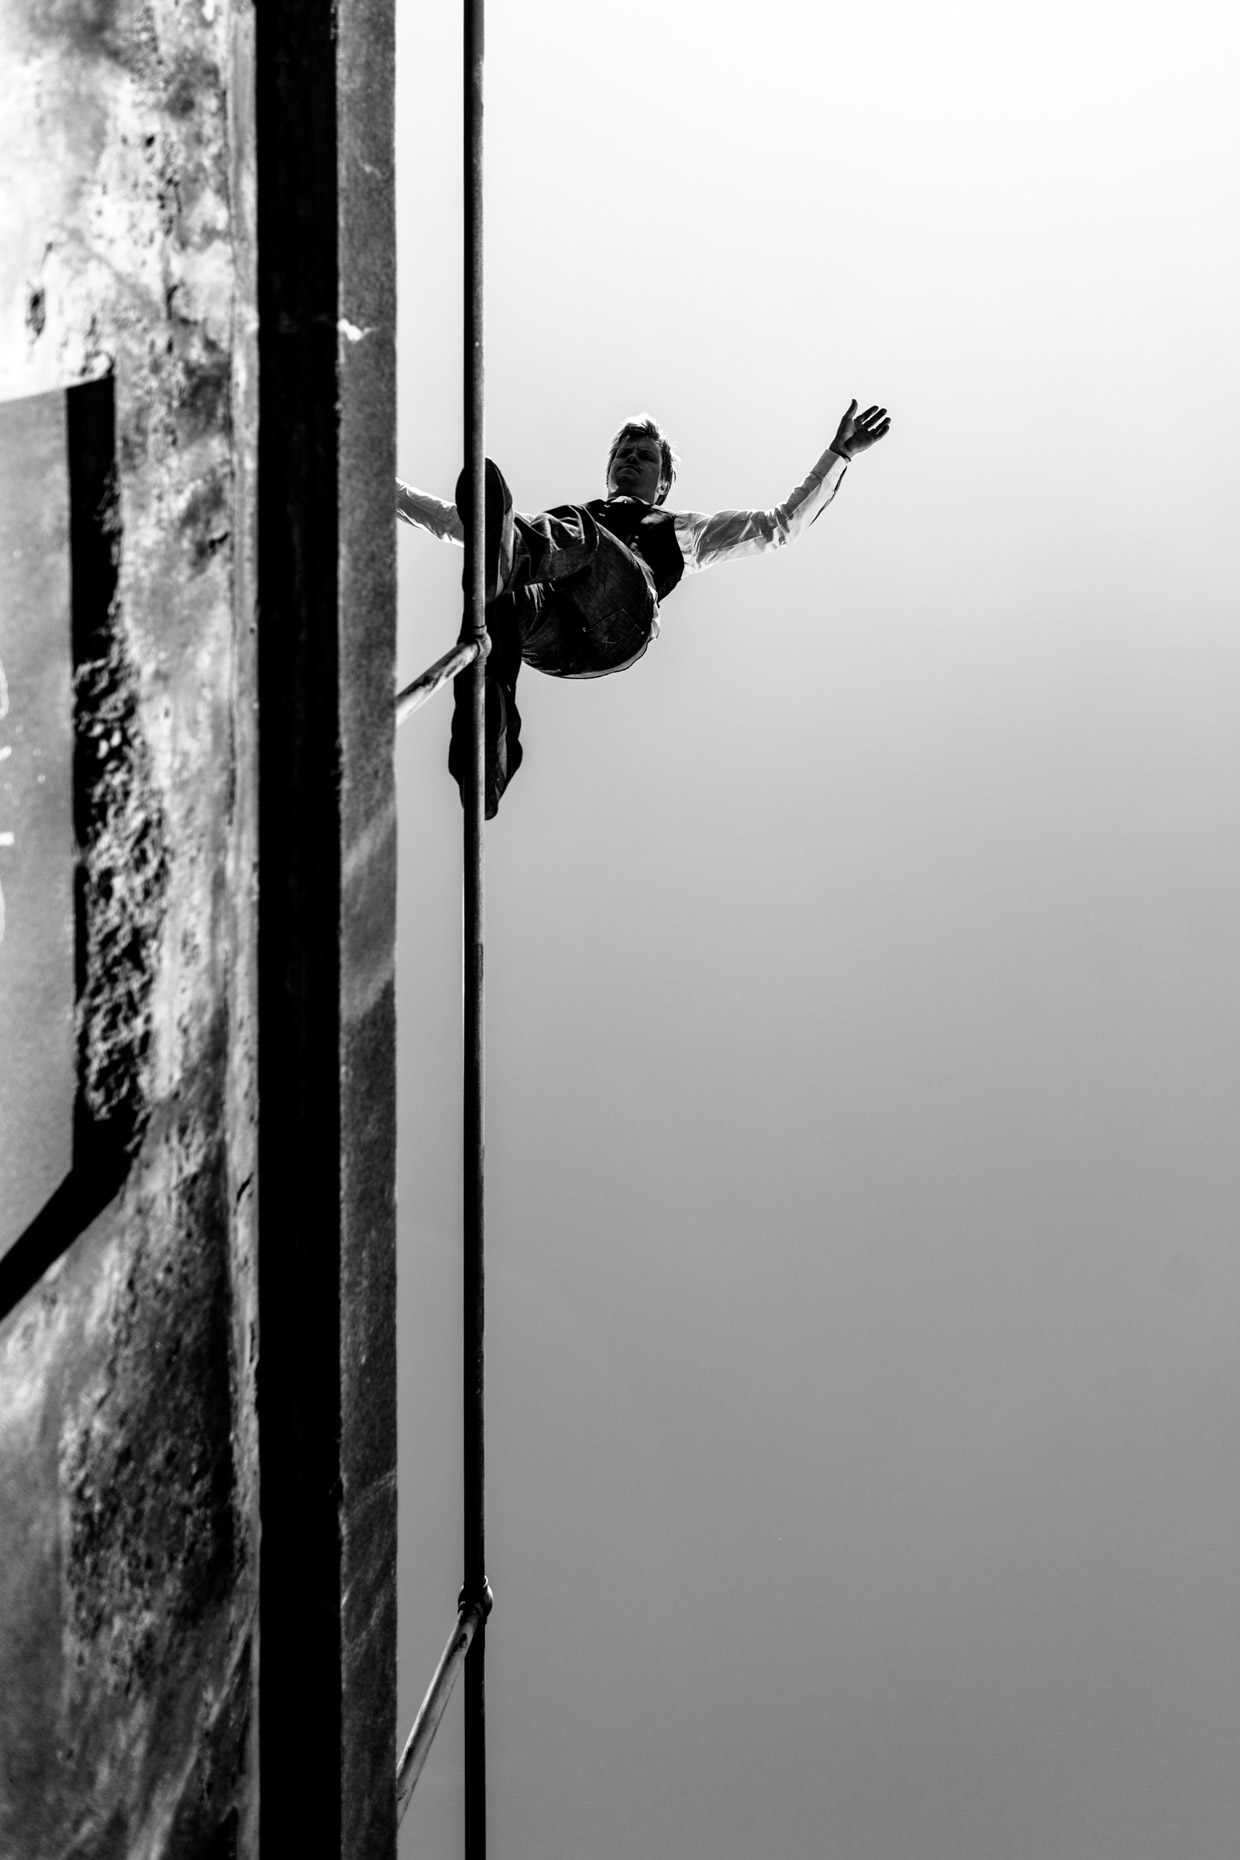 professional stuntman and freerunner Brian Orosco